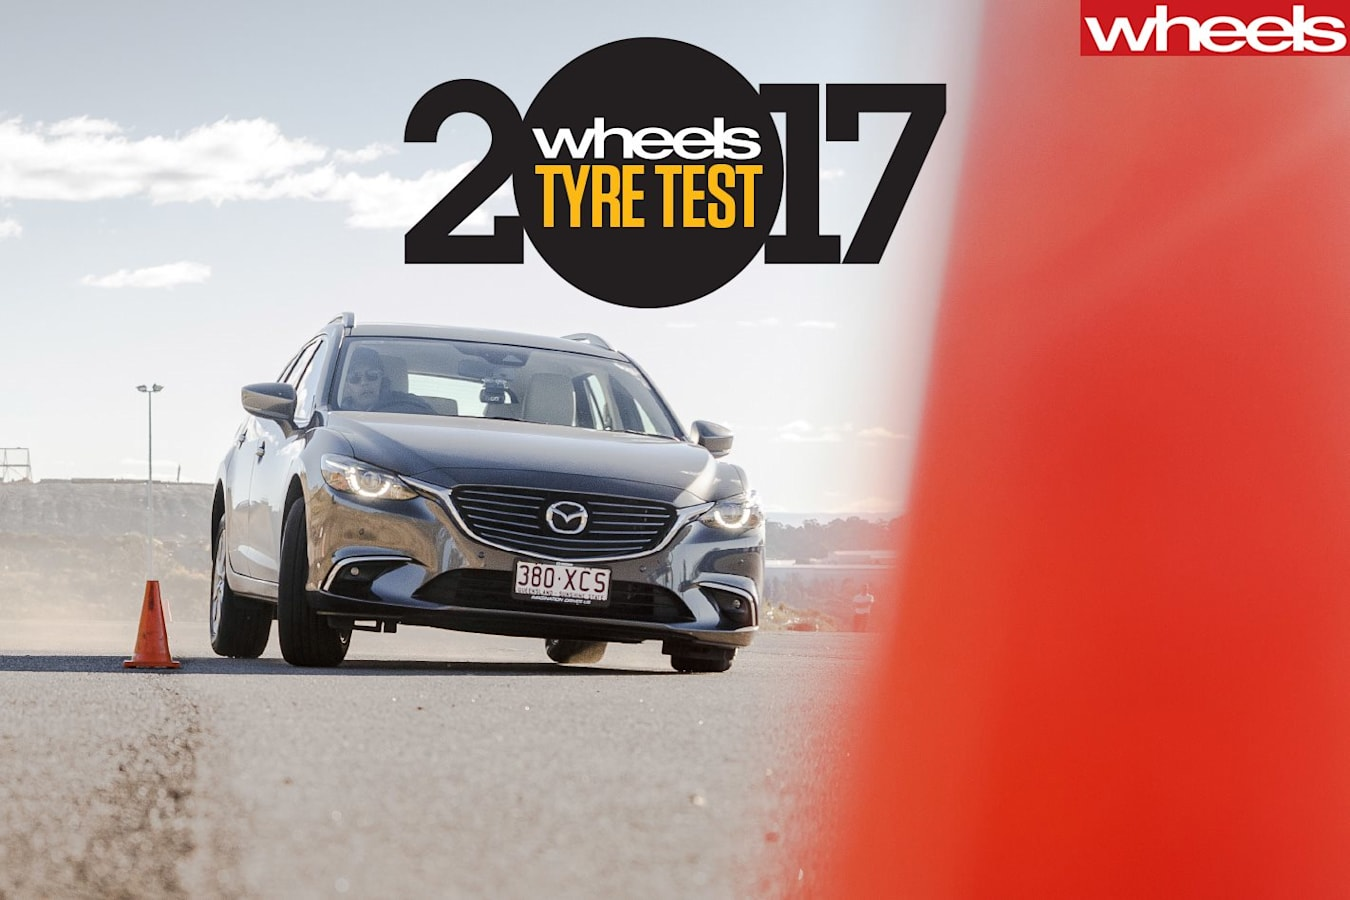 Wheels Tyre Test Cover Nw Jpg